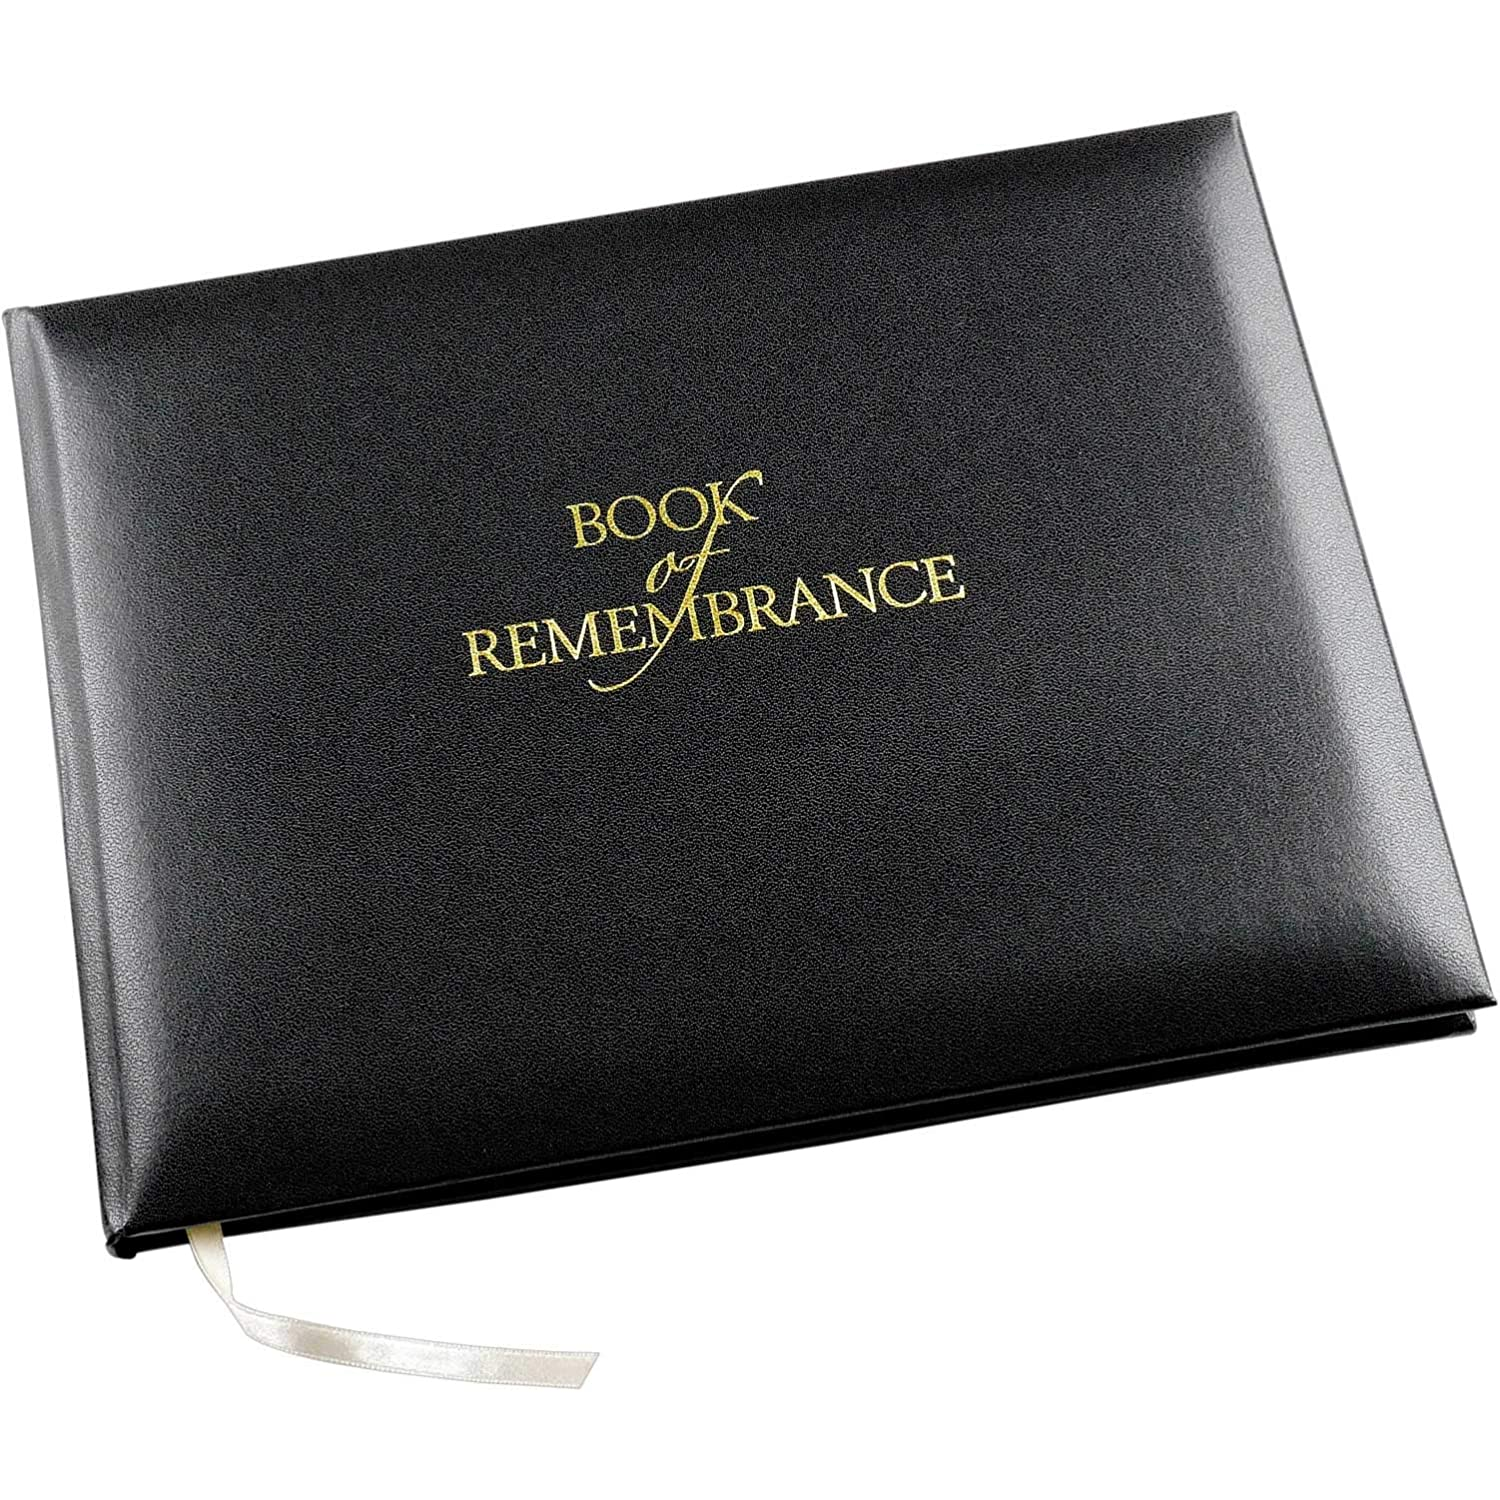 Esposti Book of Remembrance - Black - Funeral Guest Book - Memorial Book - Condolence Book - Presentation Boxed - (Large Size - Width 265mm - Height 195mm - Depth 15mm)